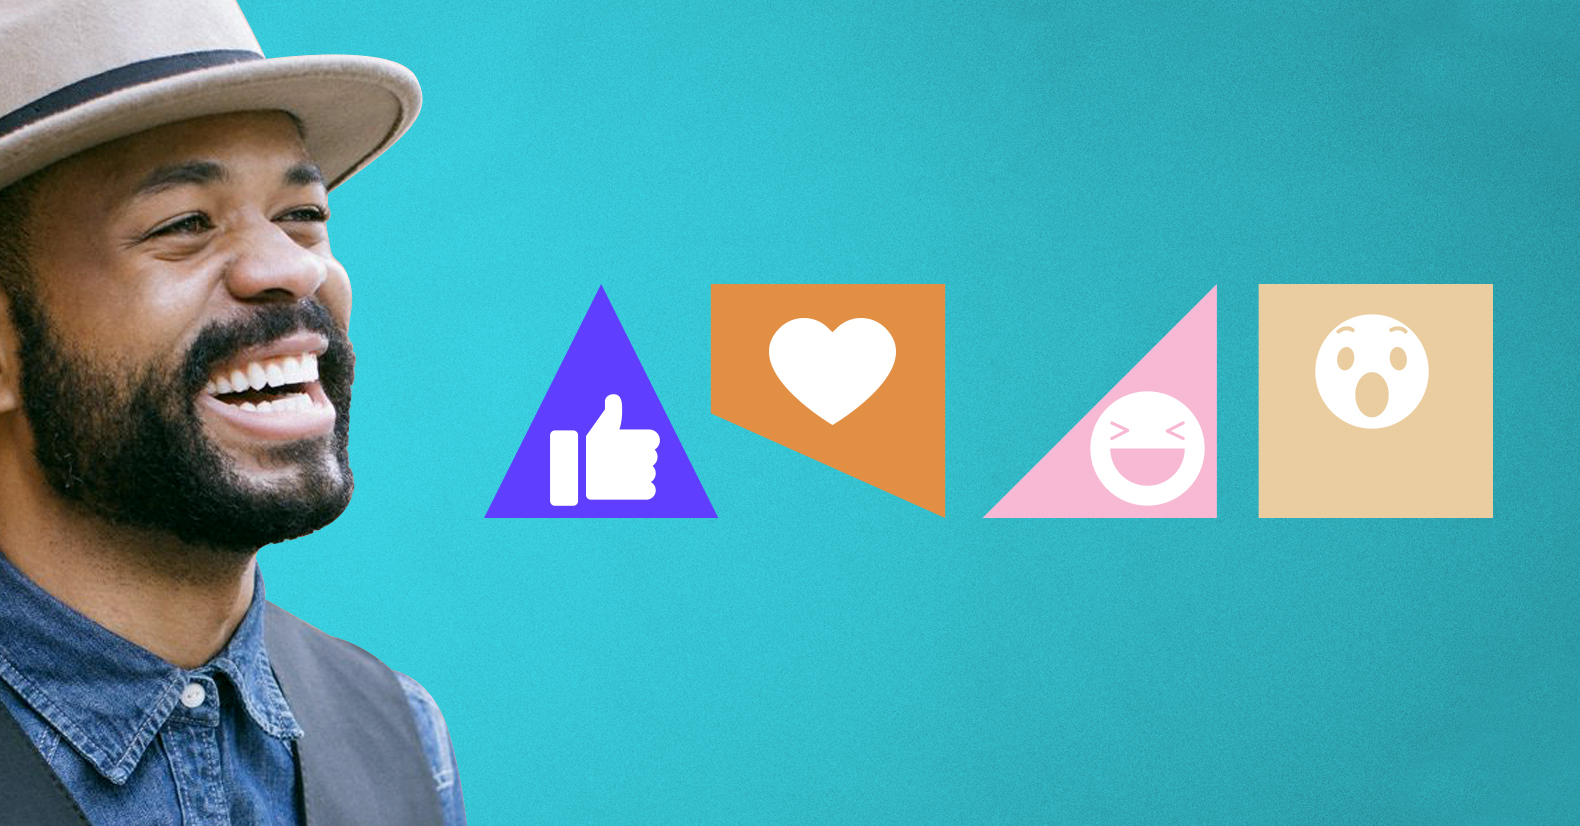 Emotional Marketing: How To Use It To Create Powerful Facebook Ads